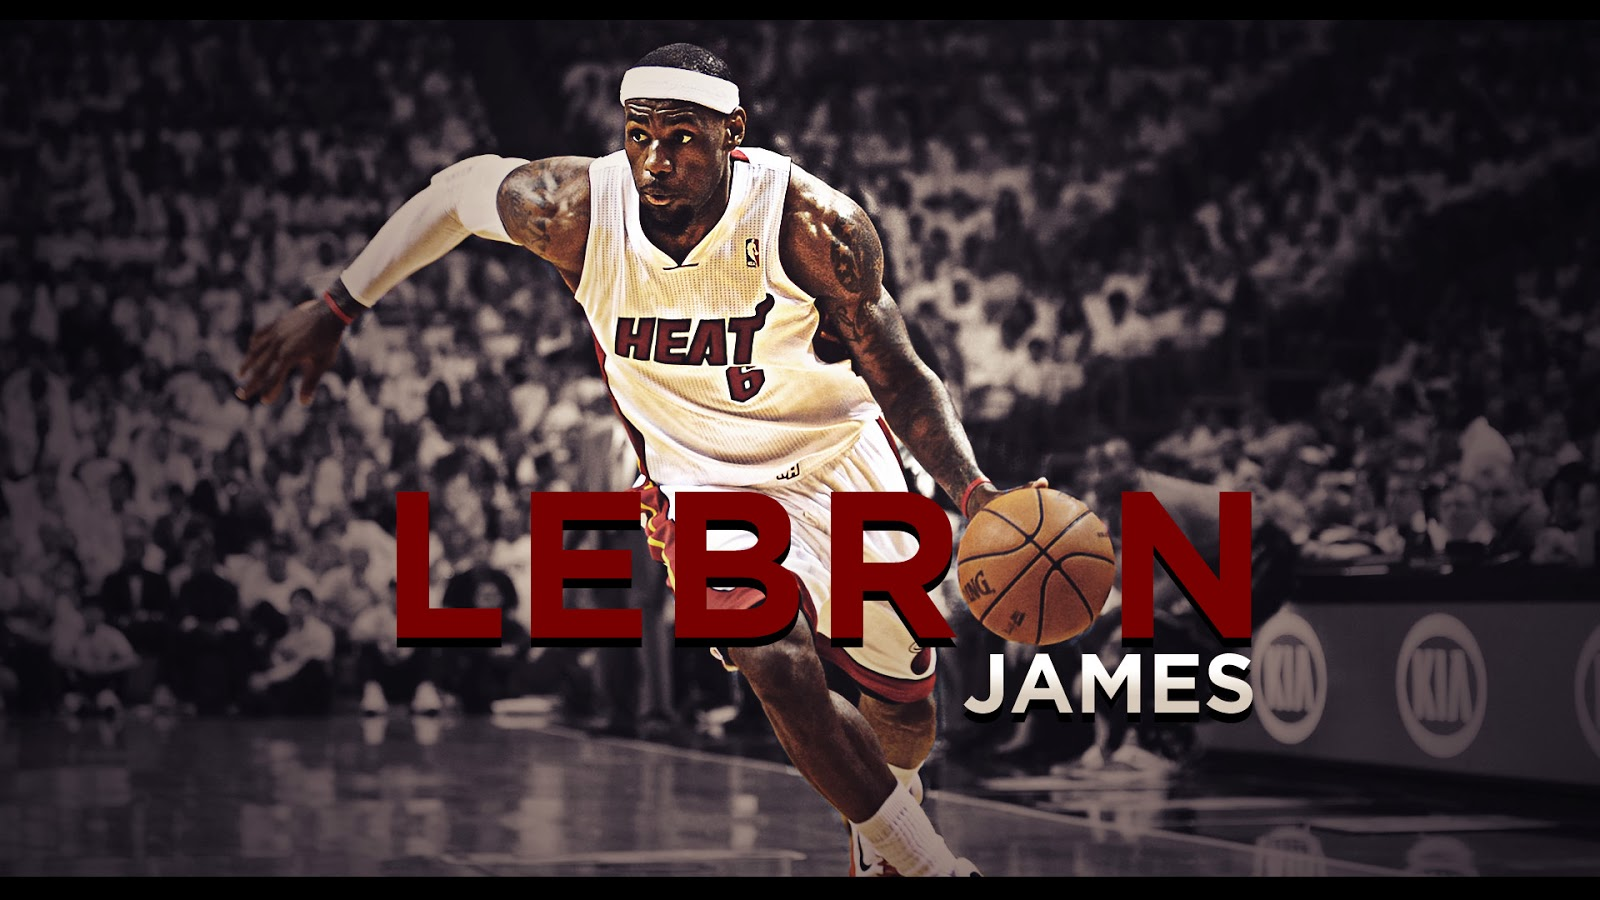 Lebron James New Wallpaper 2014 - Its All About Basketball